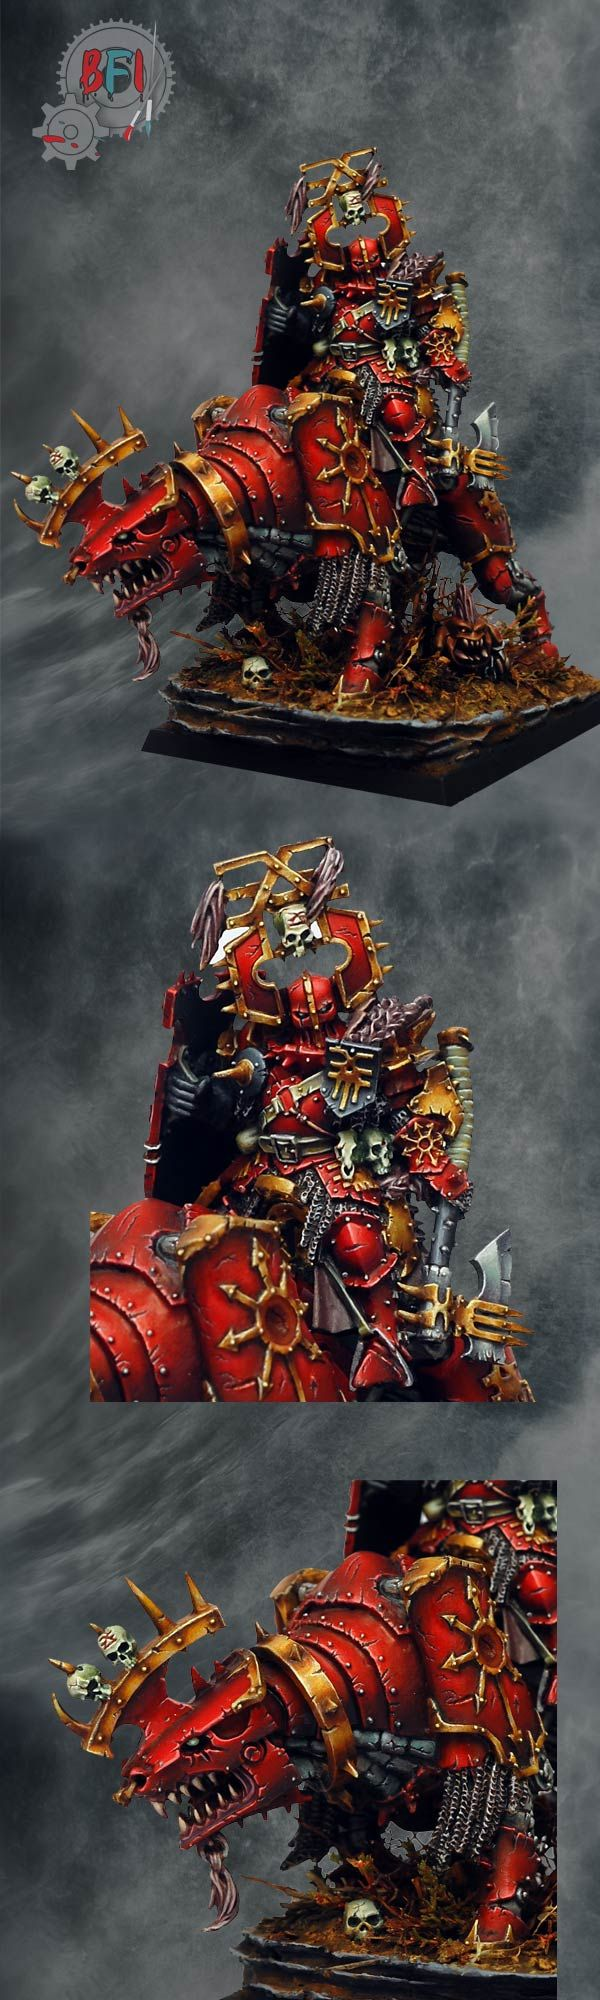 Awesome paint job on a Chaos Lord of Khorne.